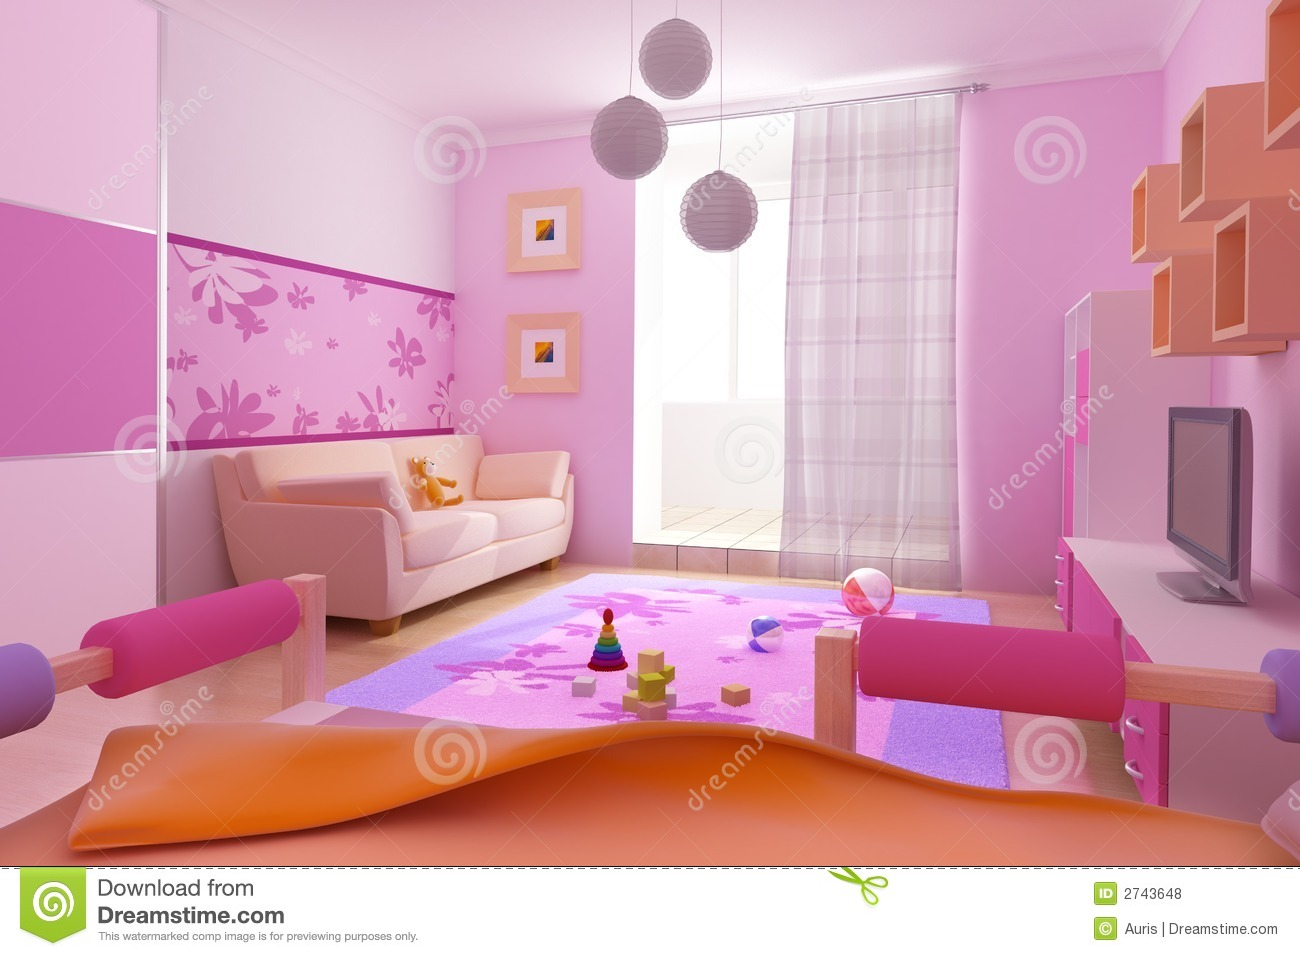 Children39;s Room Interior Royalty Free Stock Photos  Image: 2743648